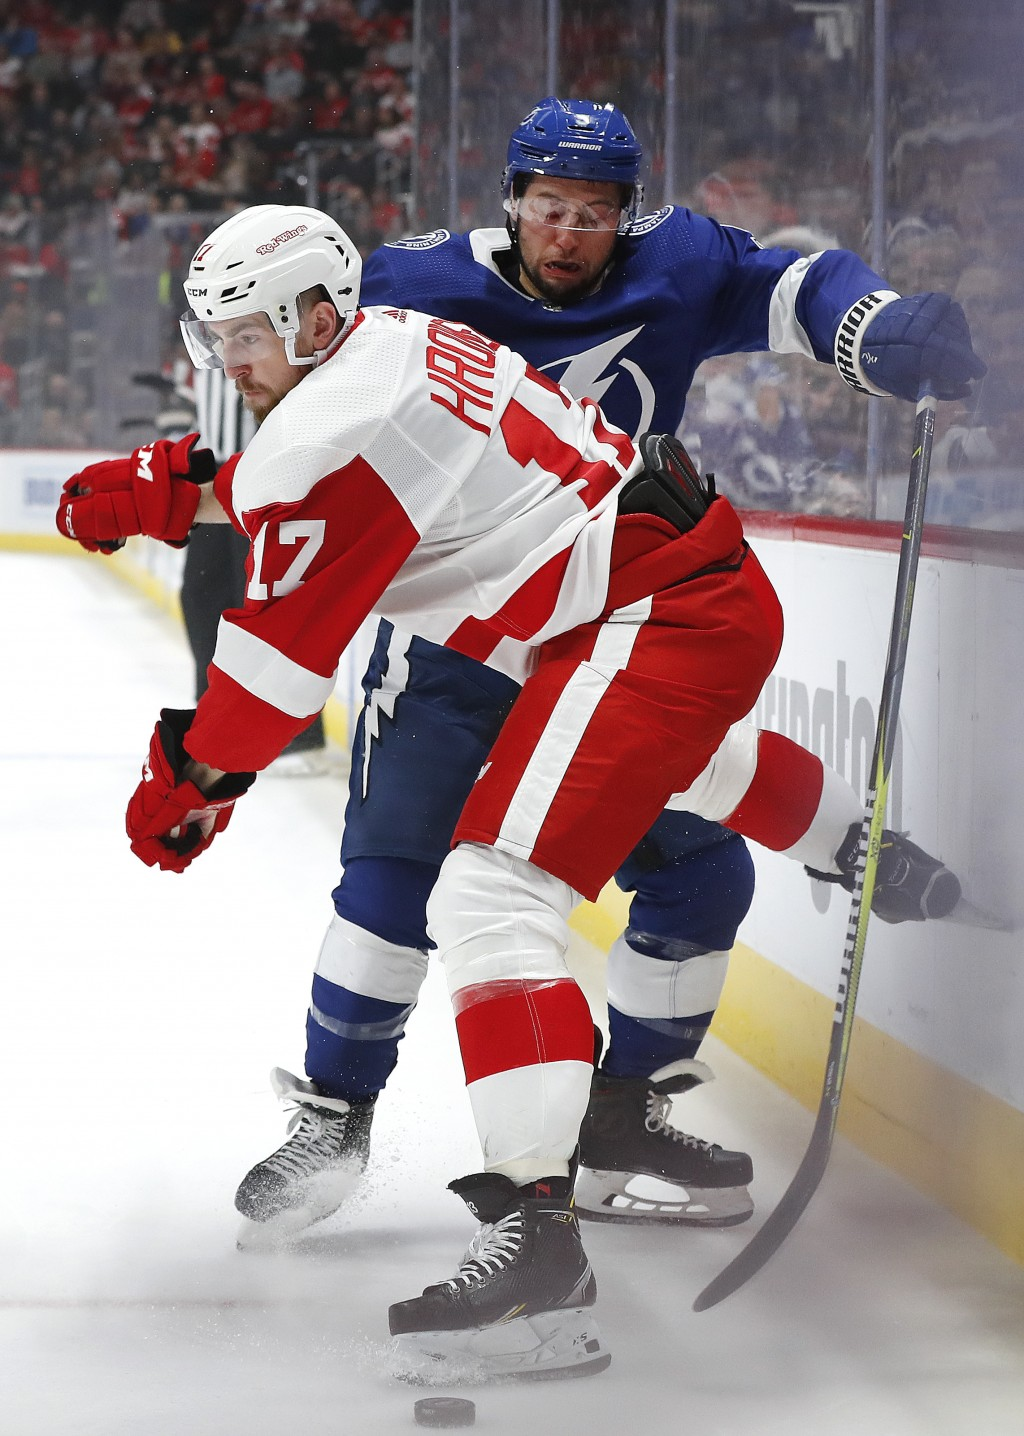 Detroit Red Wings defenseman Filip Hronek (17) checks Tampa Bay Lightning center Tyler Johnson (9) in the first period of an NHL hockey game, Thursday